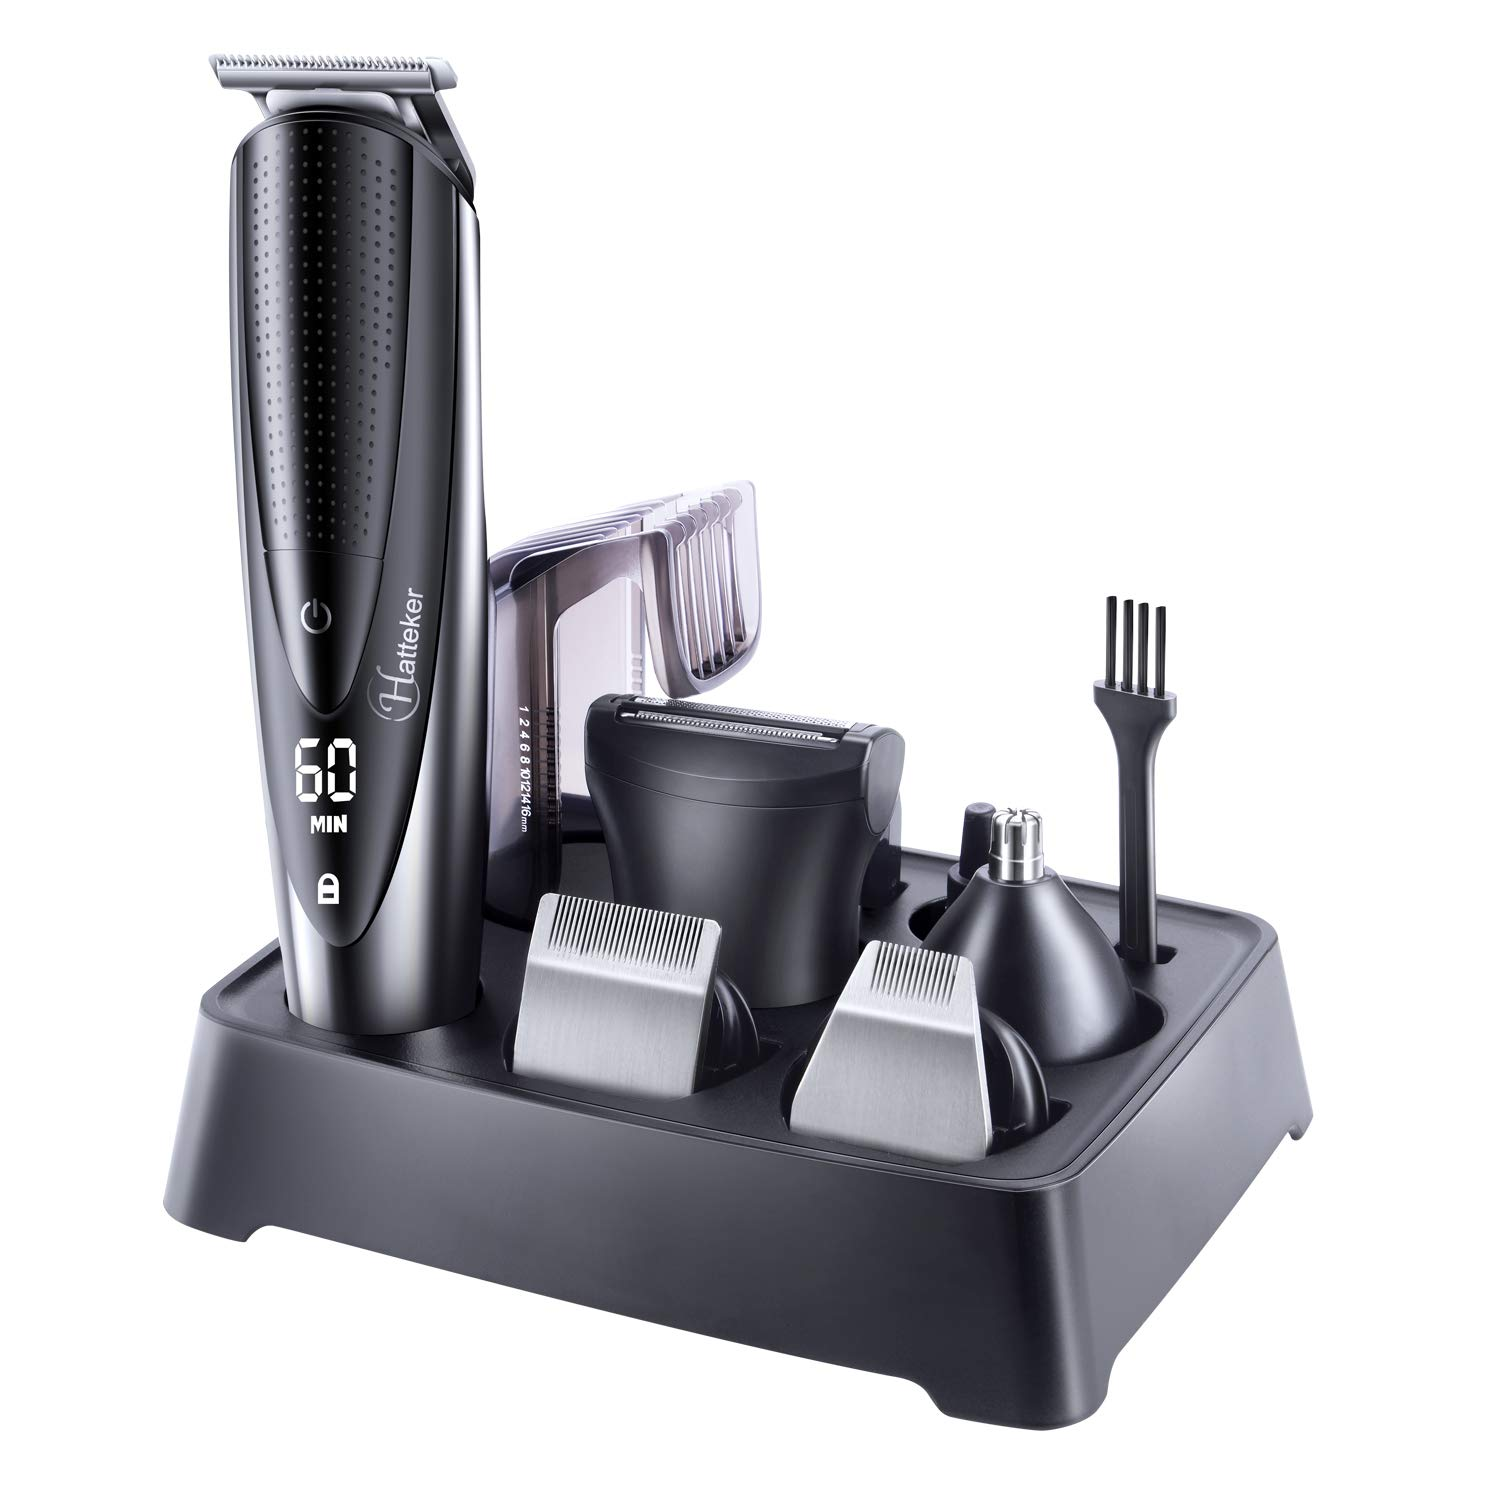 5 In 1 Men's Beard Trimmer Grooming Kit, Cordless Waterproof Hair Trimmer Kit